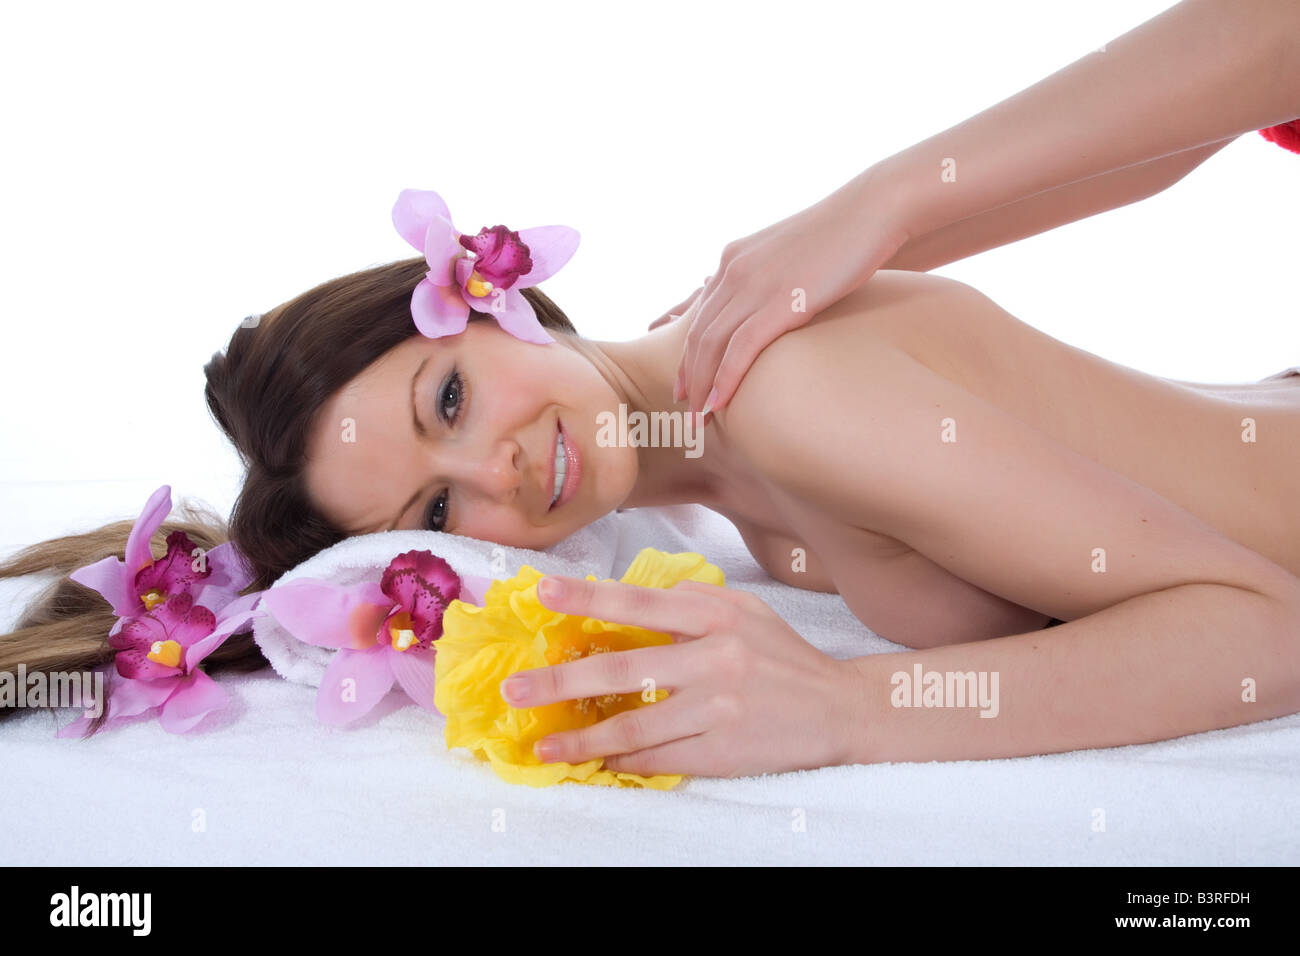 Erotic massage to restore harmony in the family: types and techniques of erotic massage 14